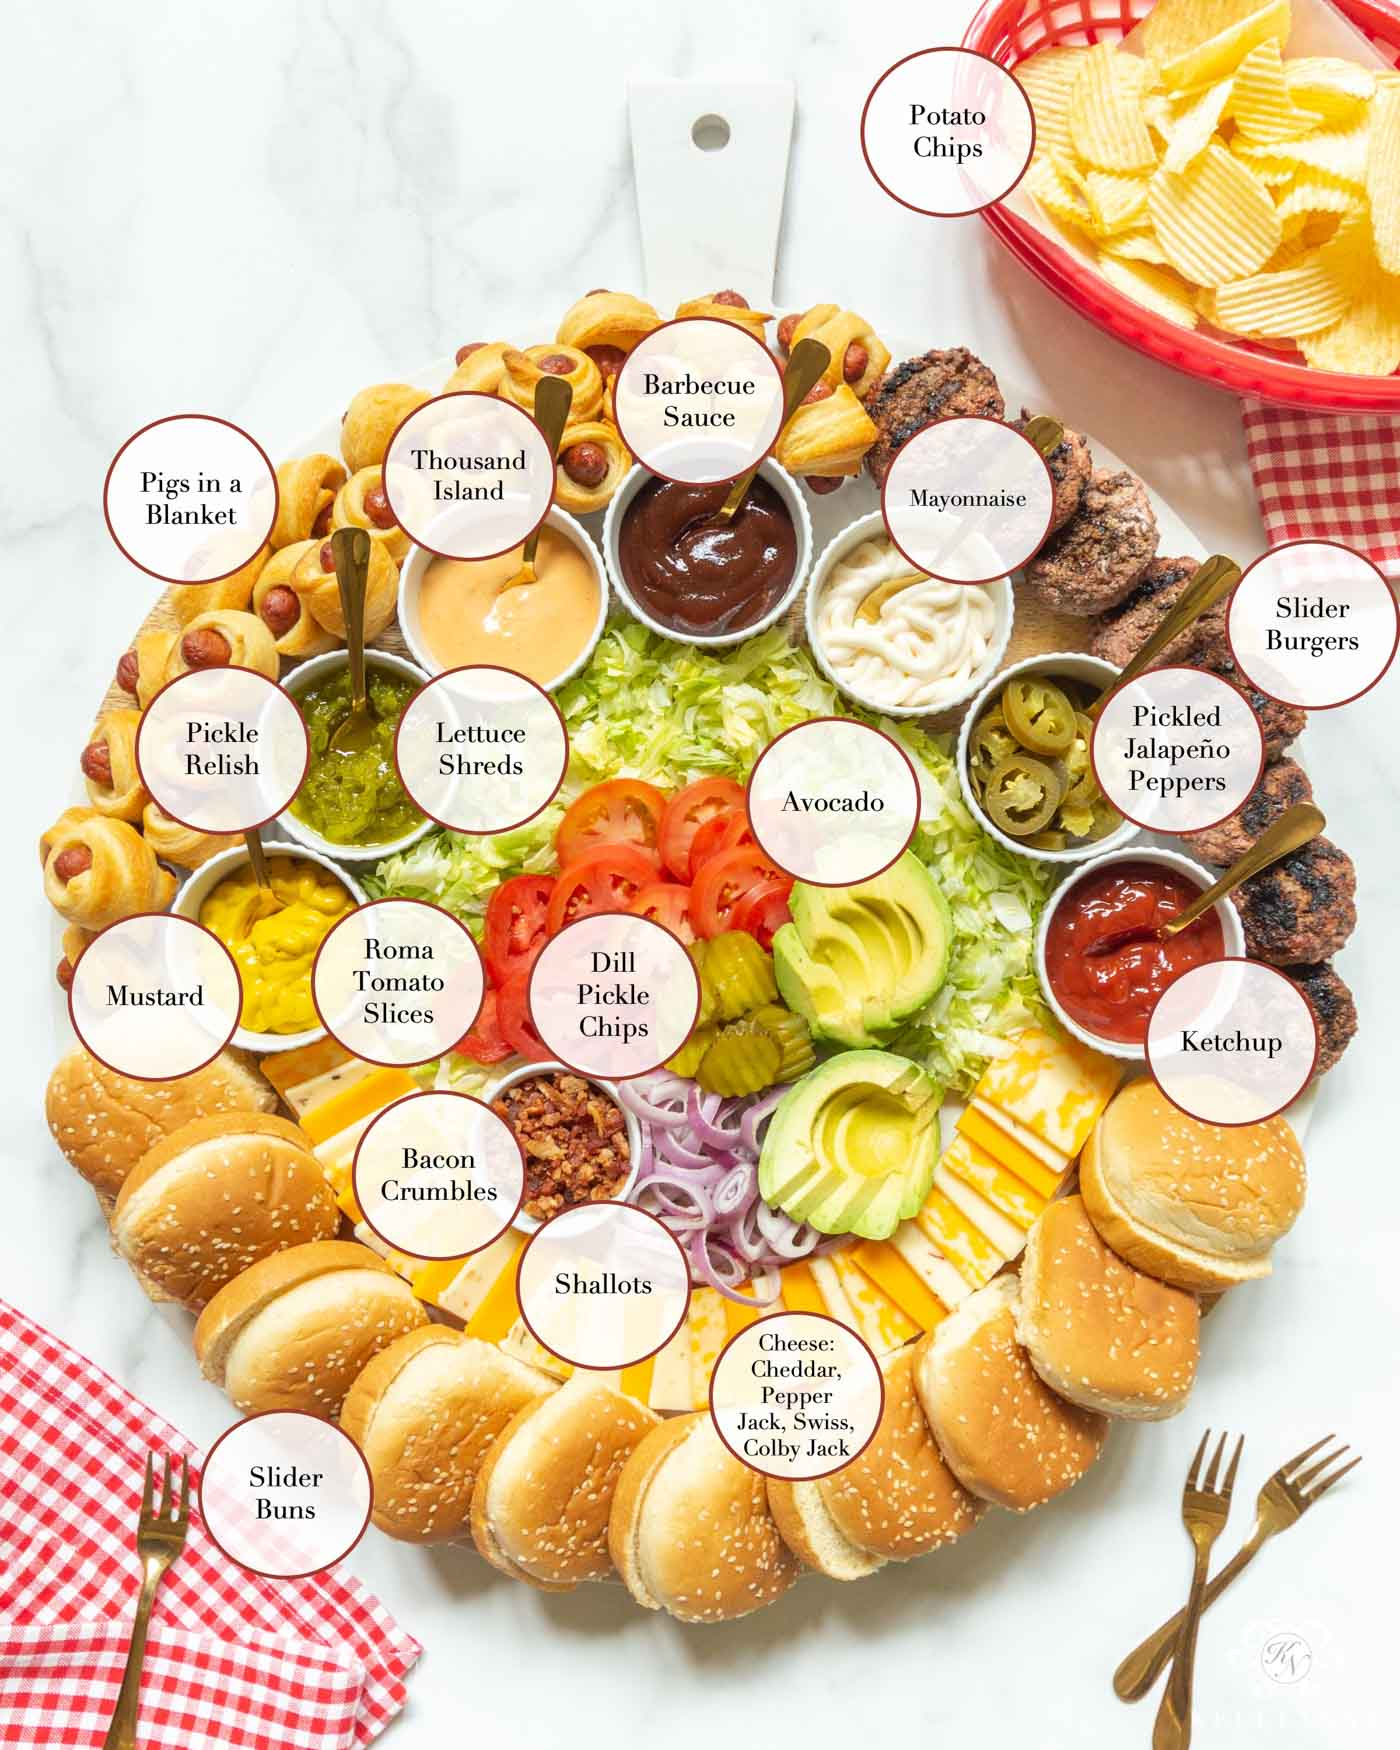 A New Charcuterie Board Concept for Your Next Cookout -- Build Your Own (Slider) Burger Bar!